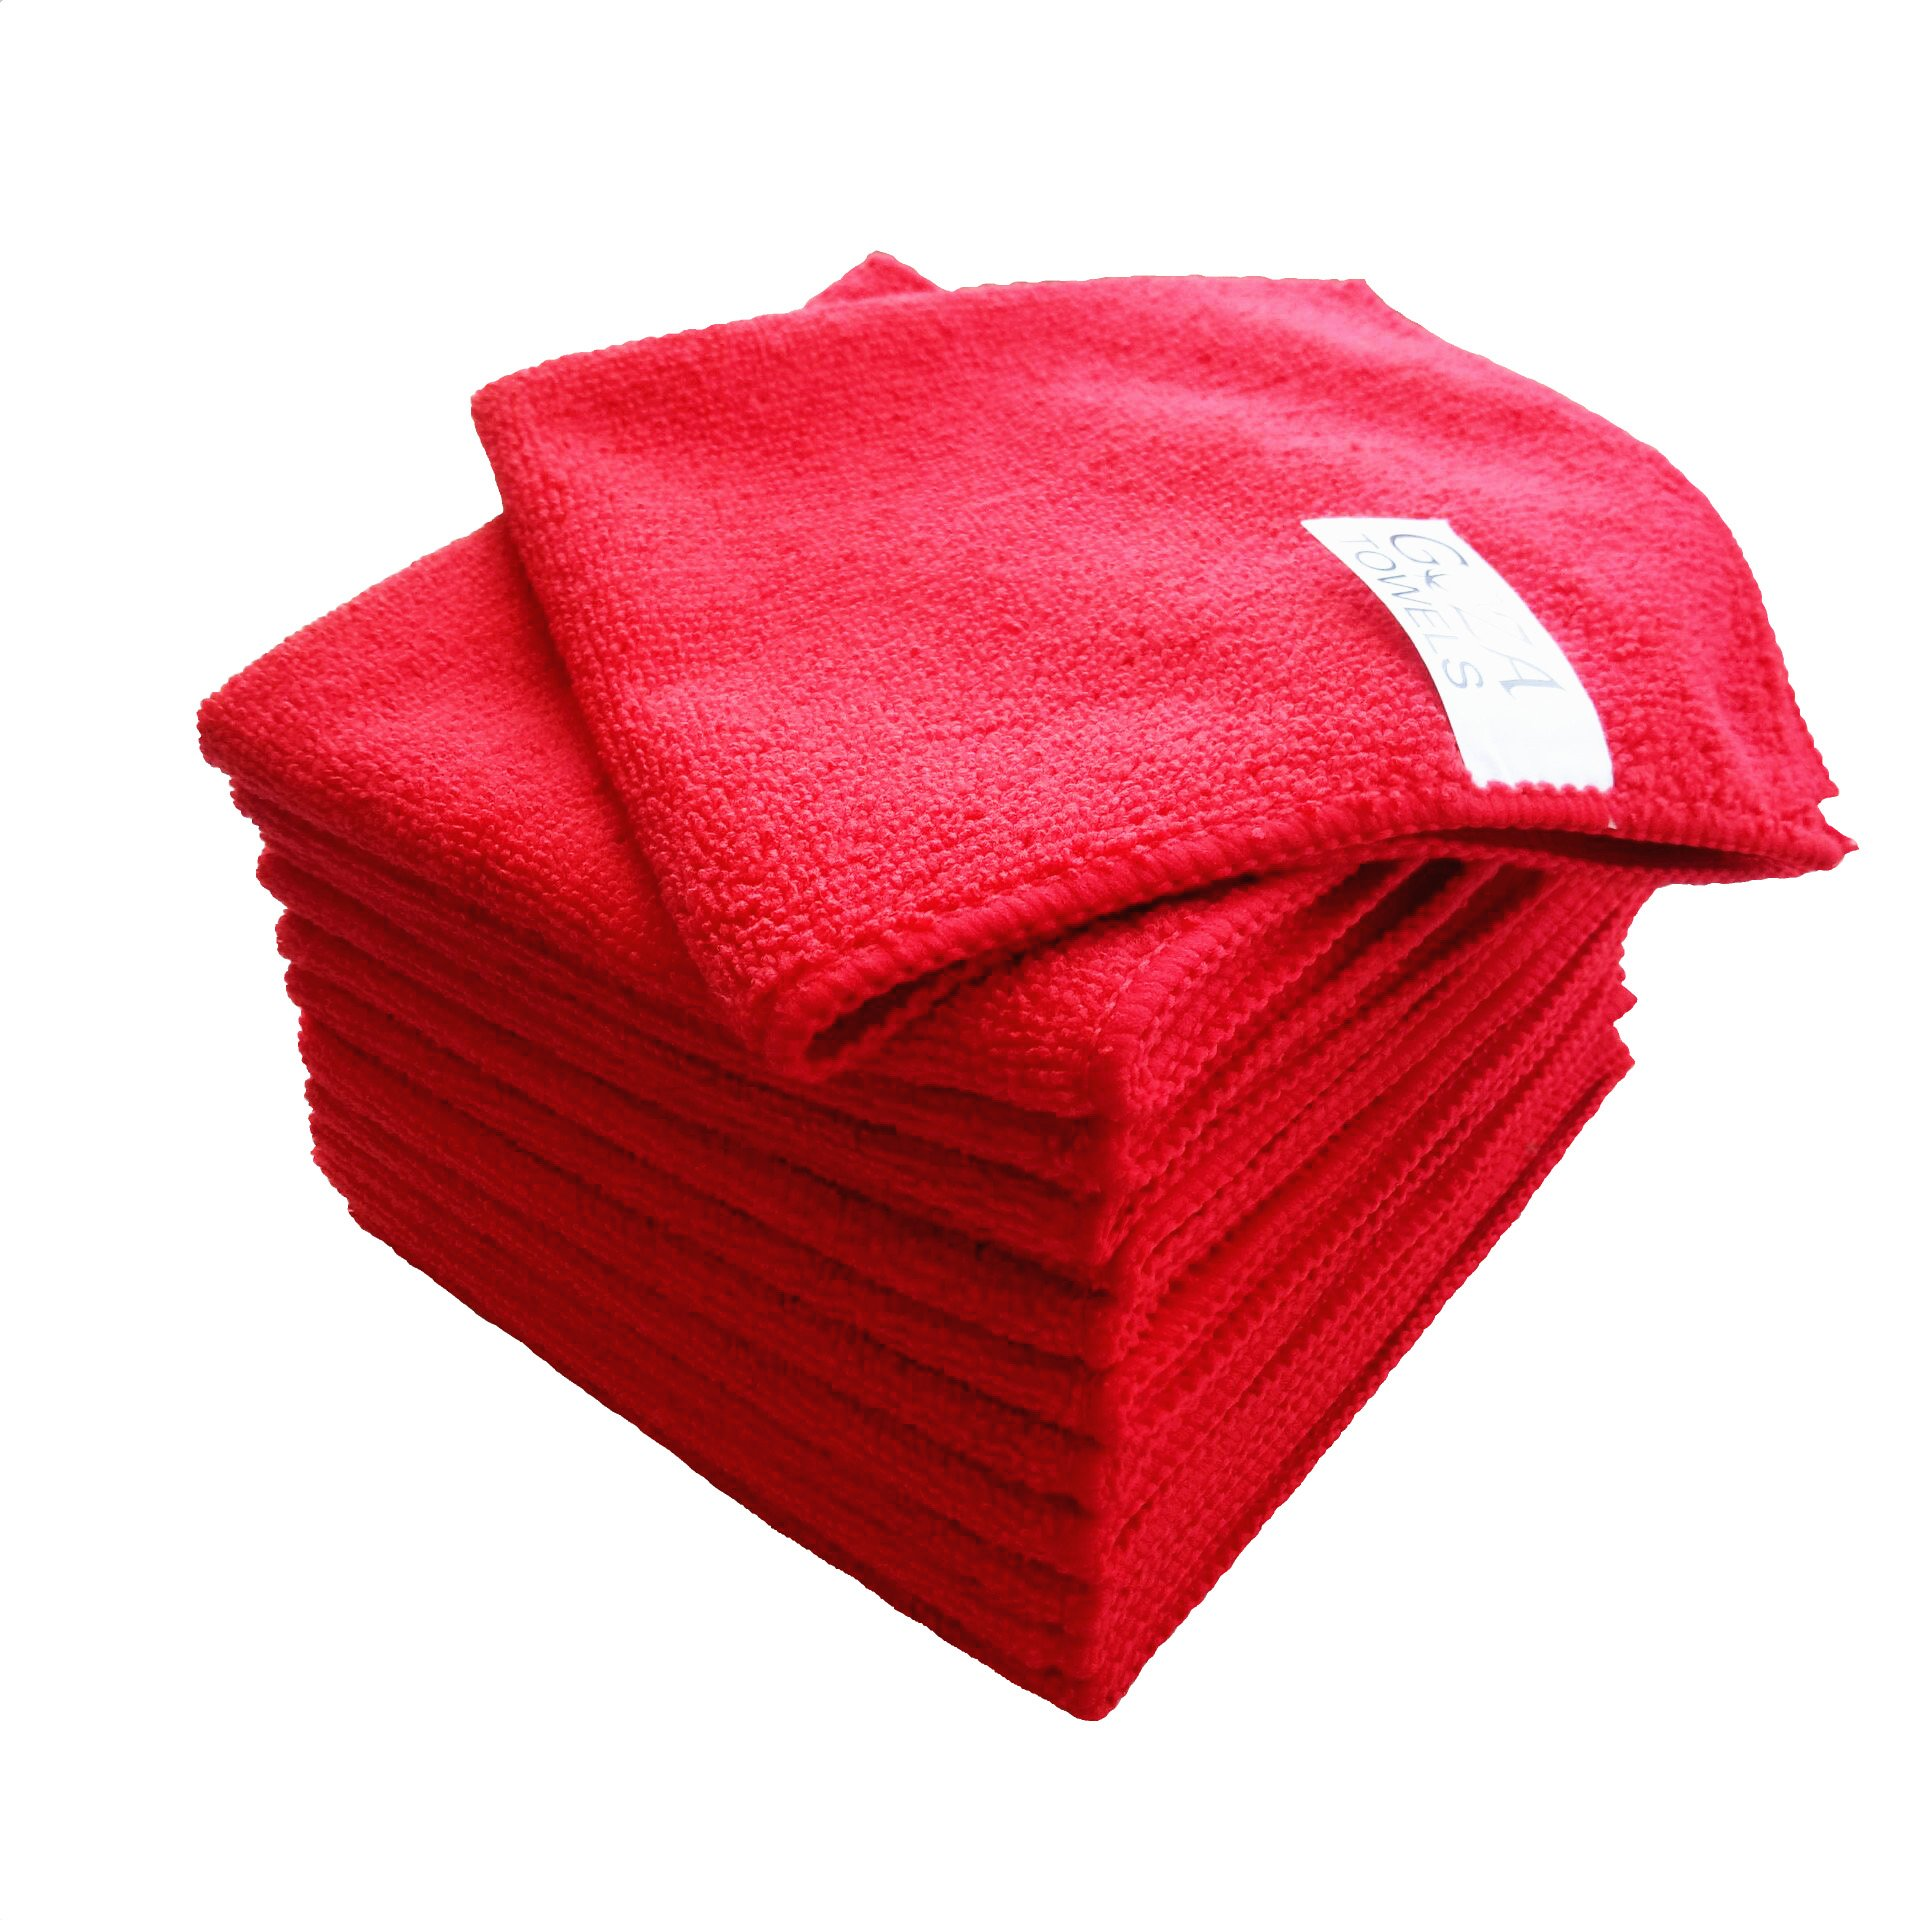 Goza Towels Microfiber Towel Cleaning Cloths Professional Grade All-Purpose 12''x12'' (Red, 12 Pack)